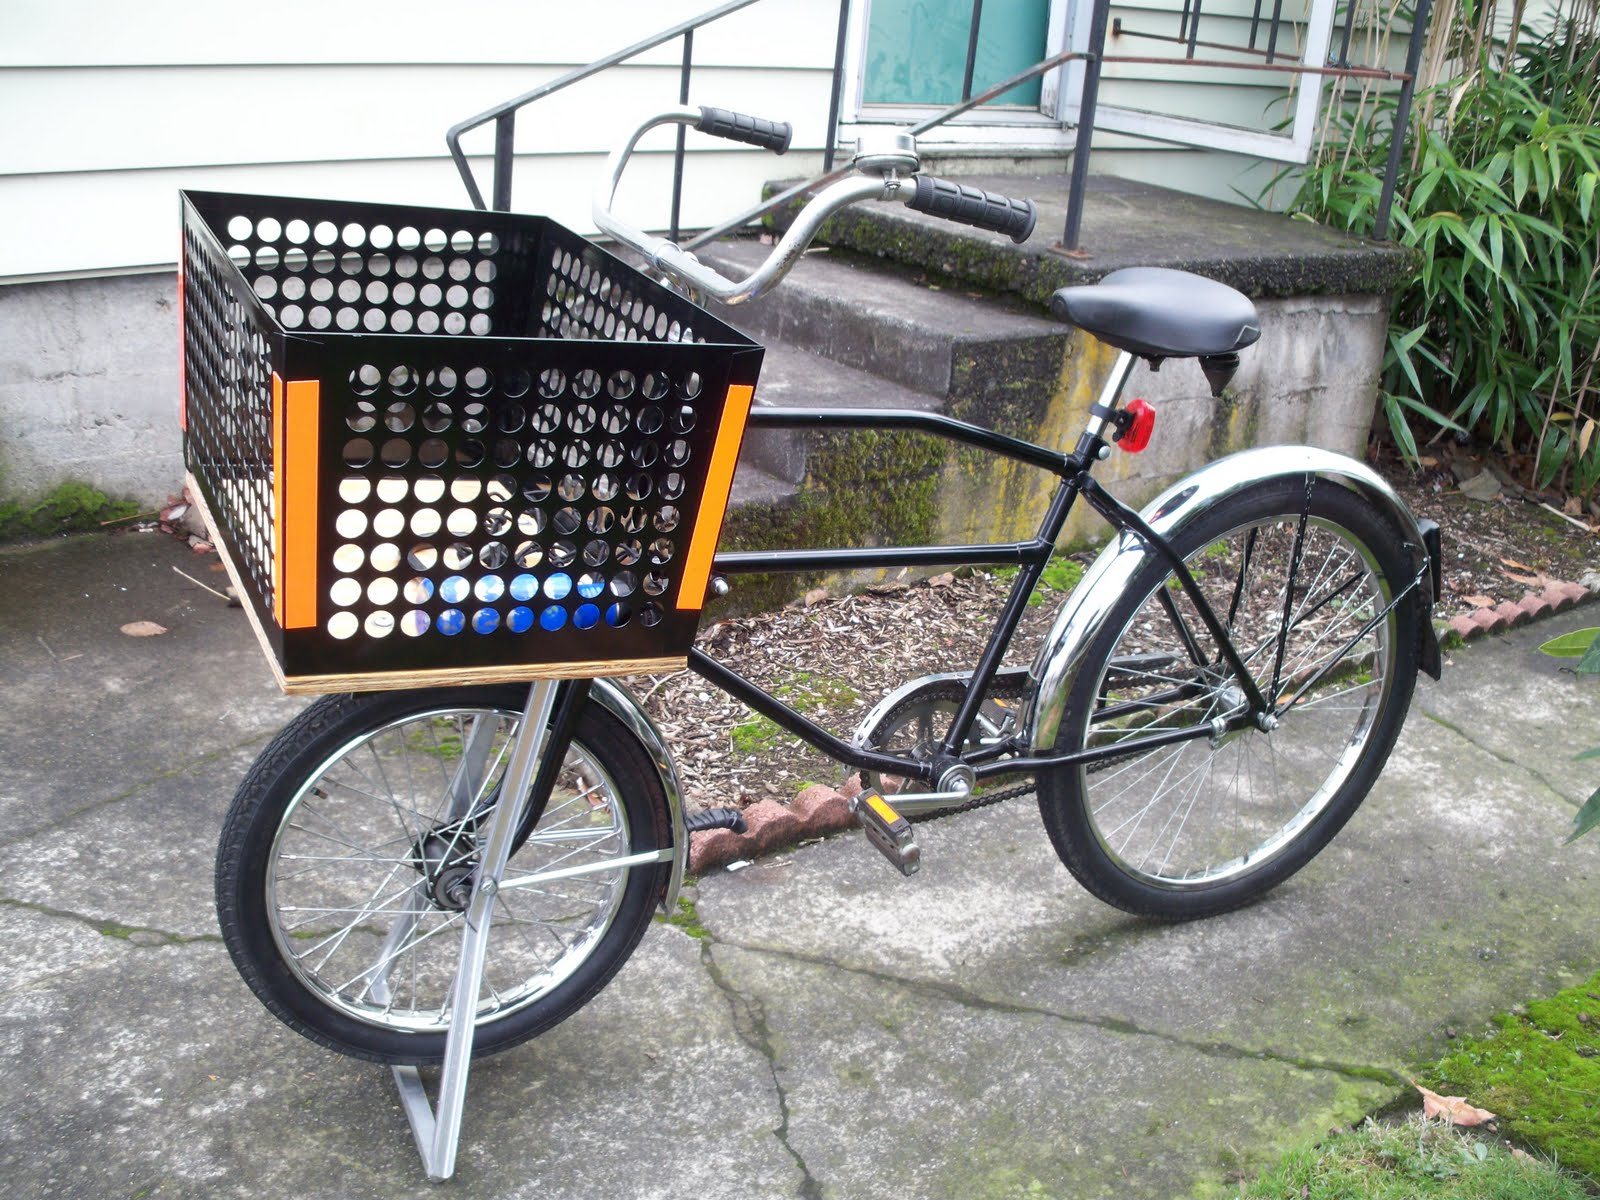 A Worksman Cycle Truck! I've been fascinated by these bikes since the first ...